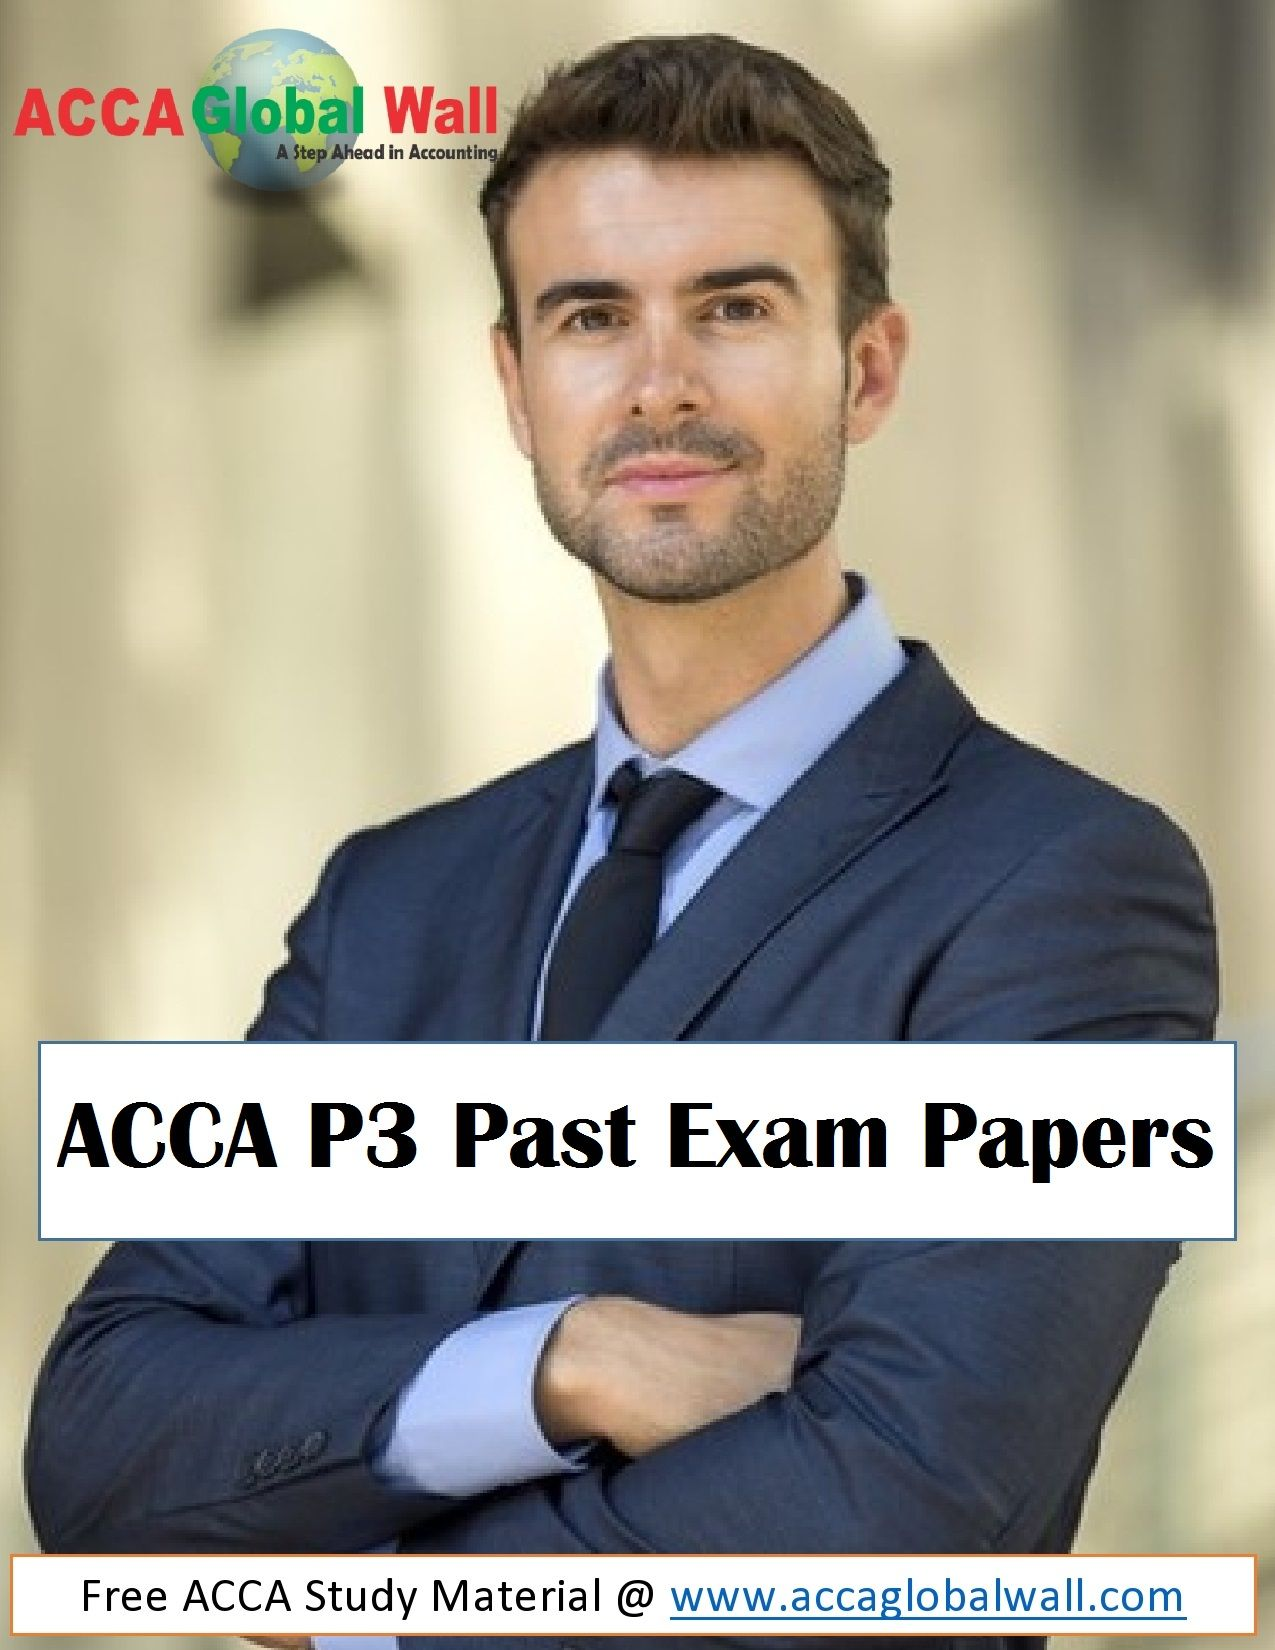 ACCA P3 Past Exam Papers are now available for download